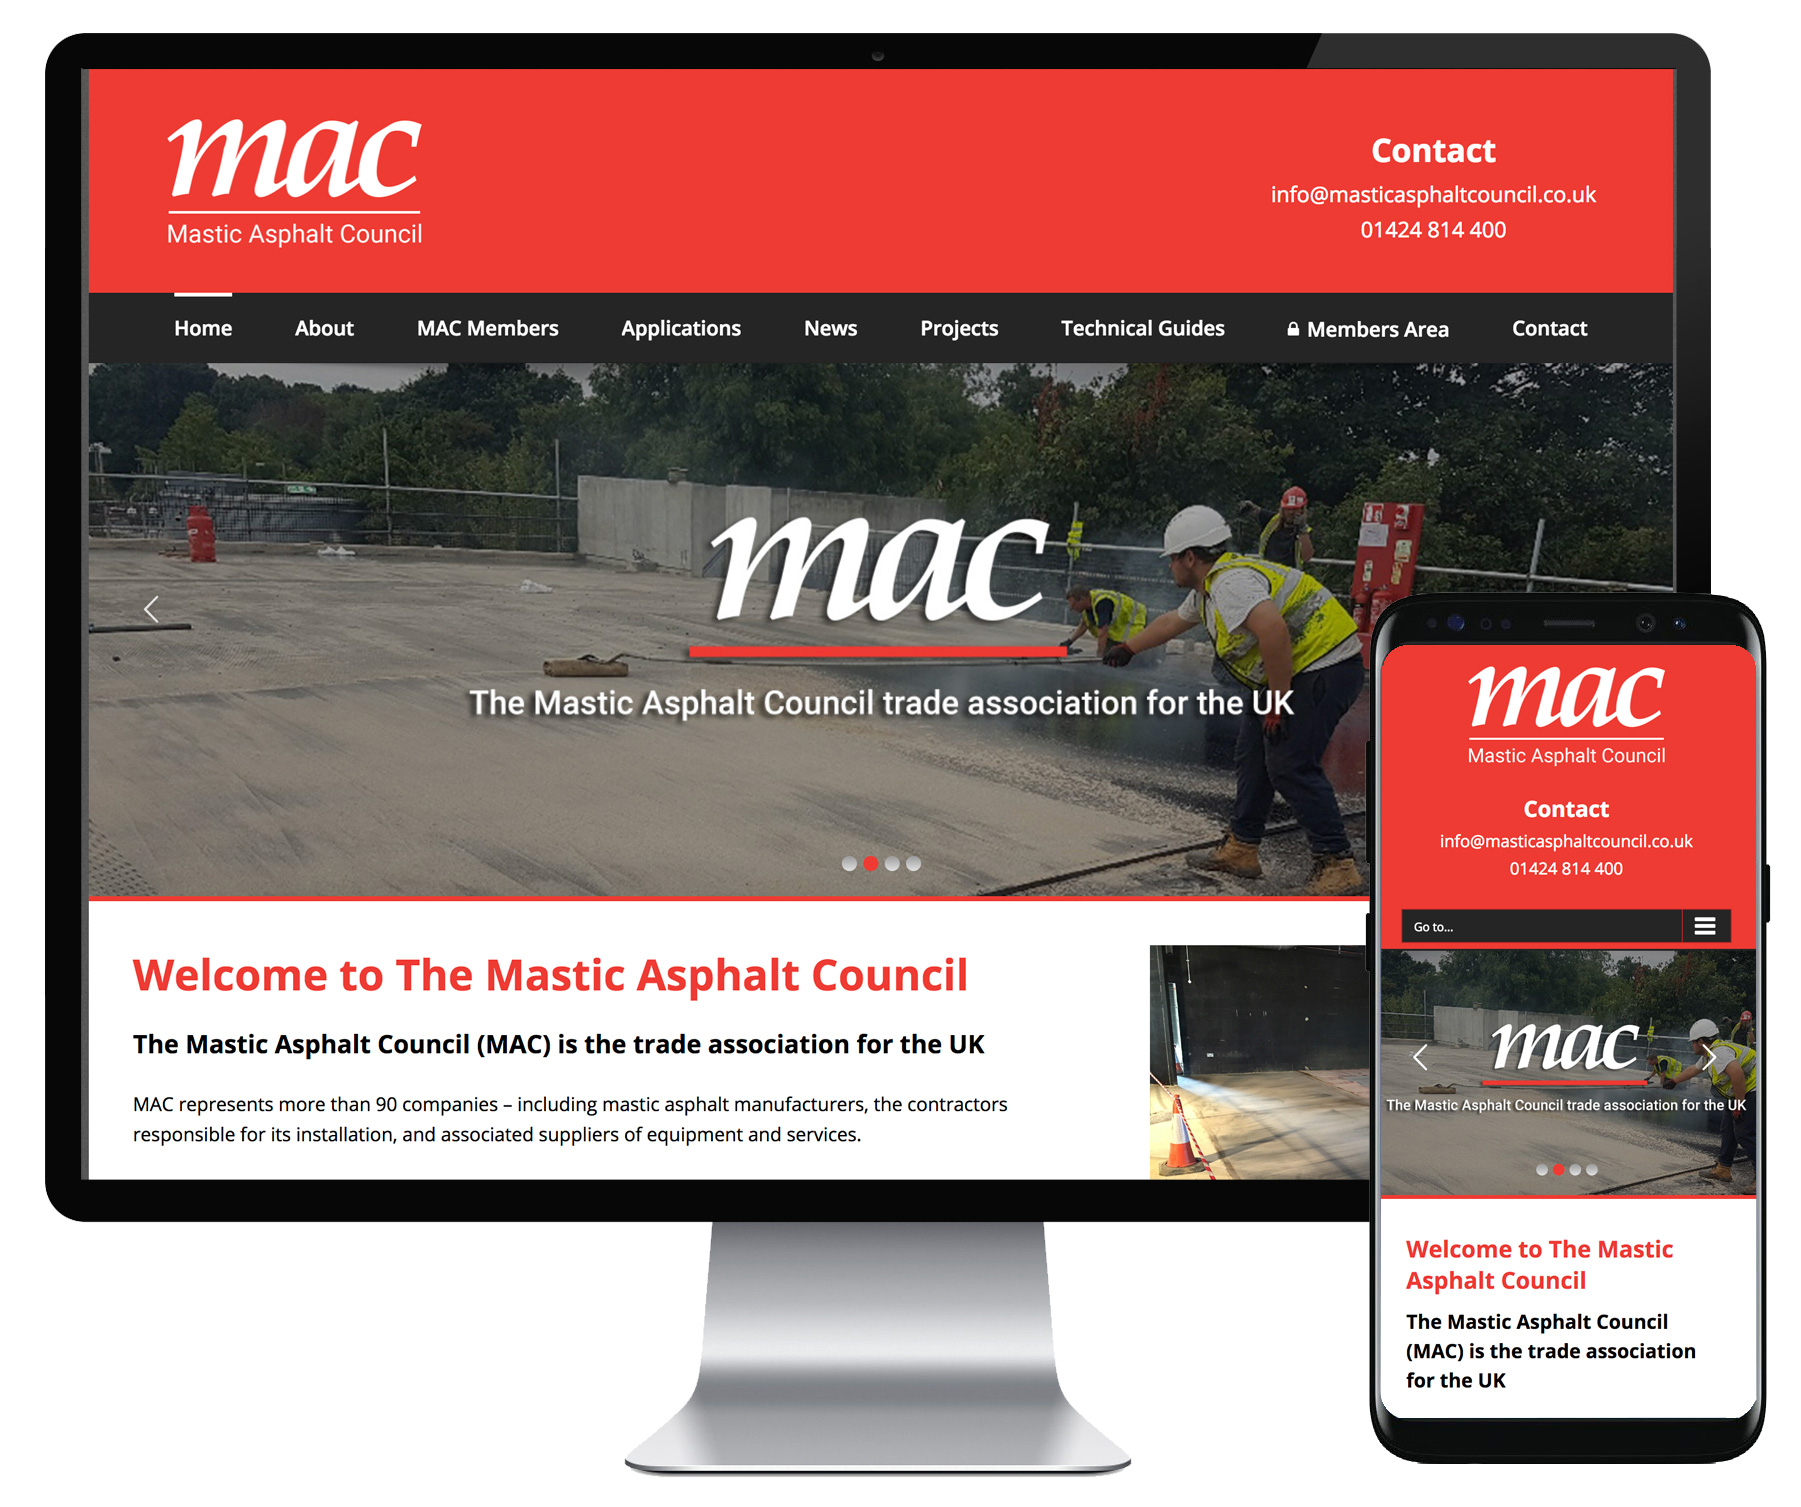 Mastic Asphalt Council website